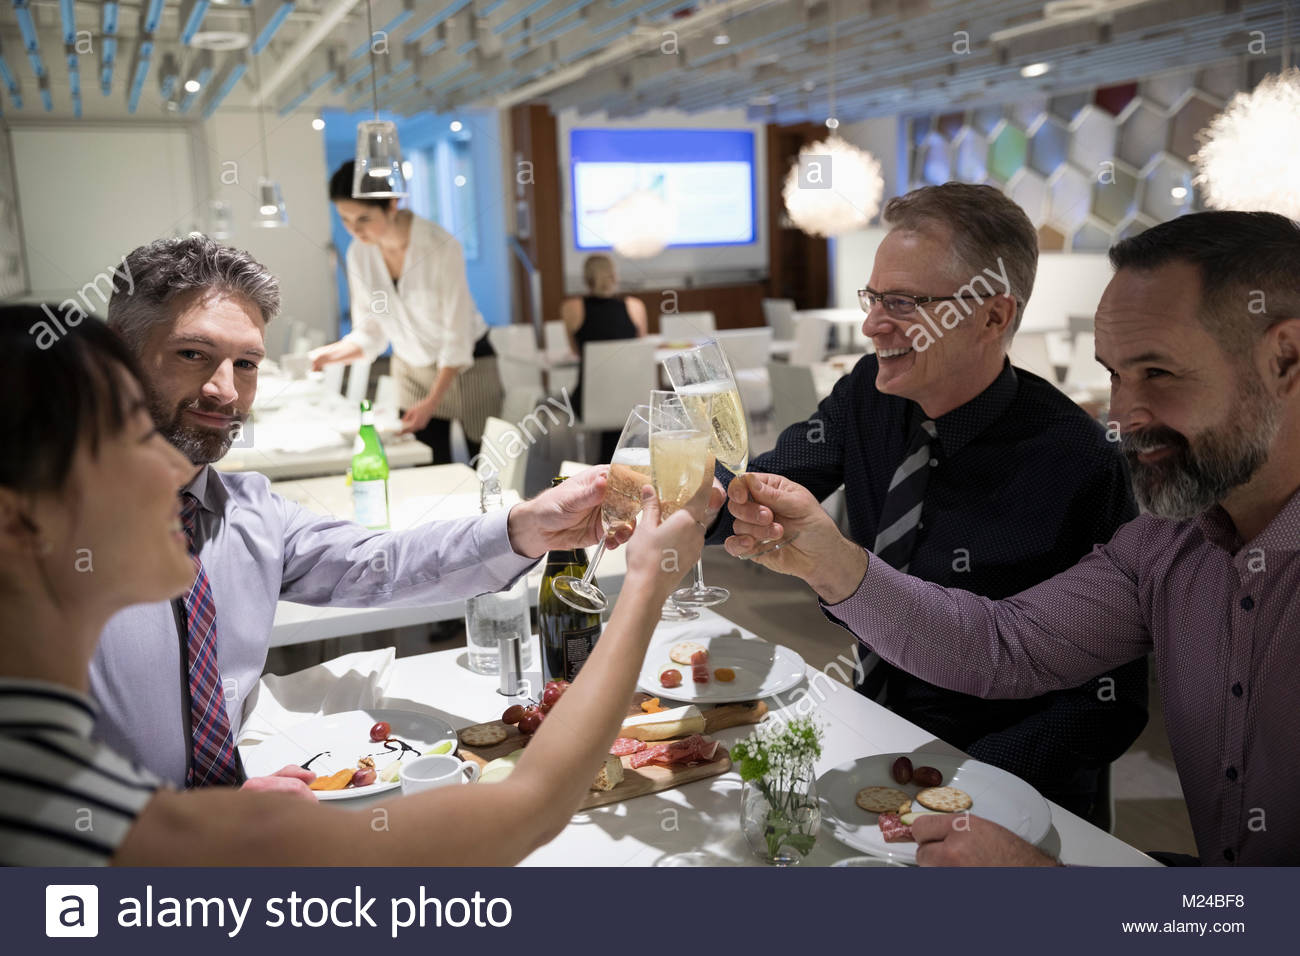 Business people celebrating, toasting champagne glasses at restaurant table - Stock Image